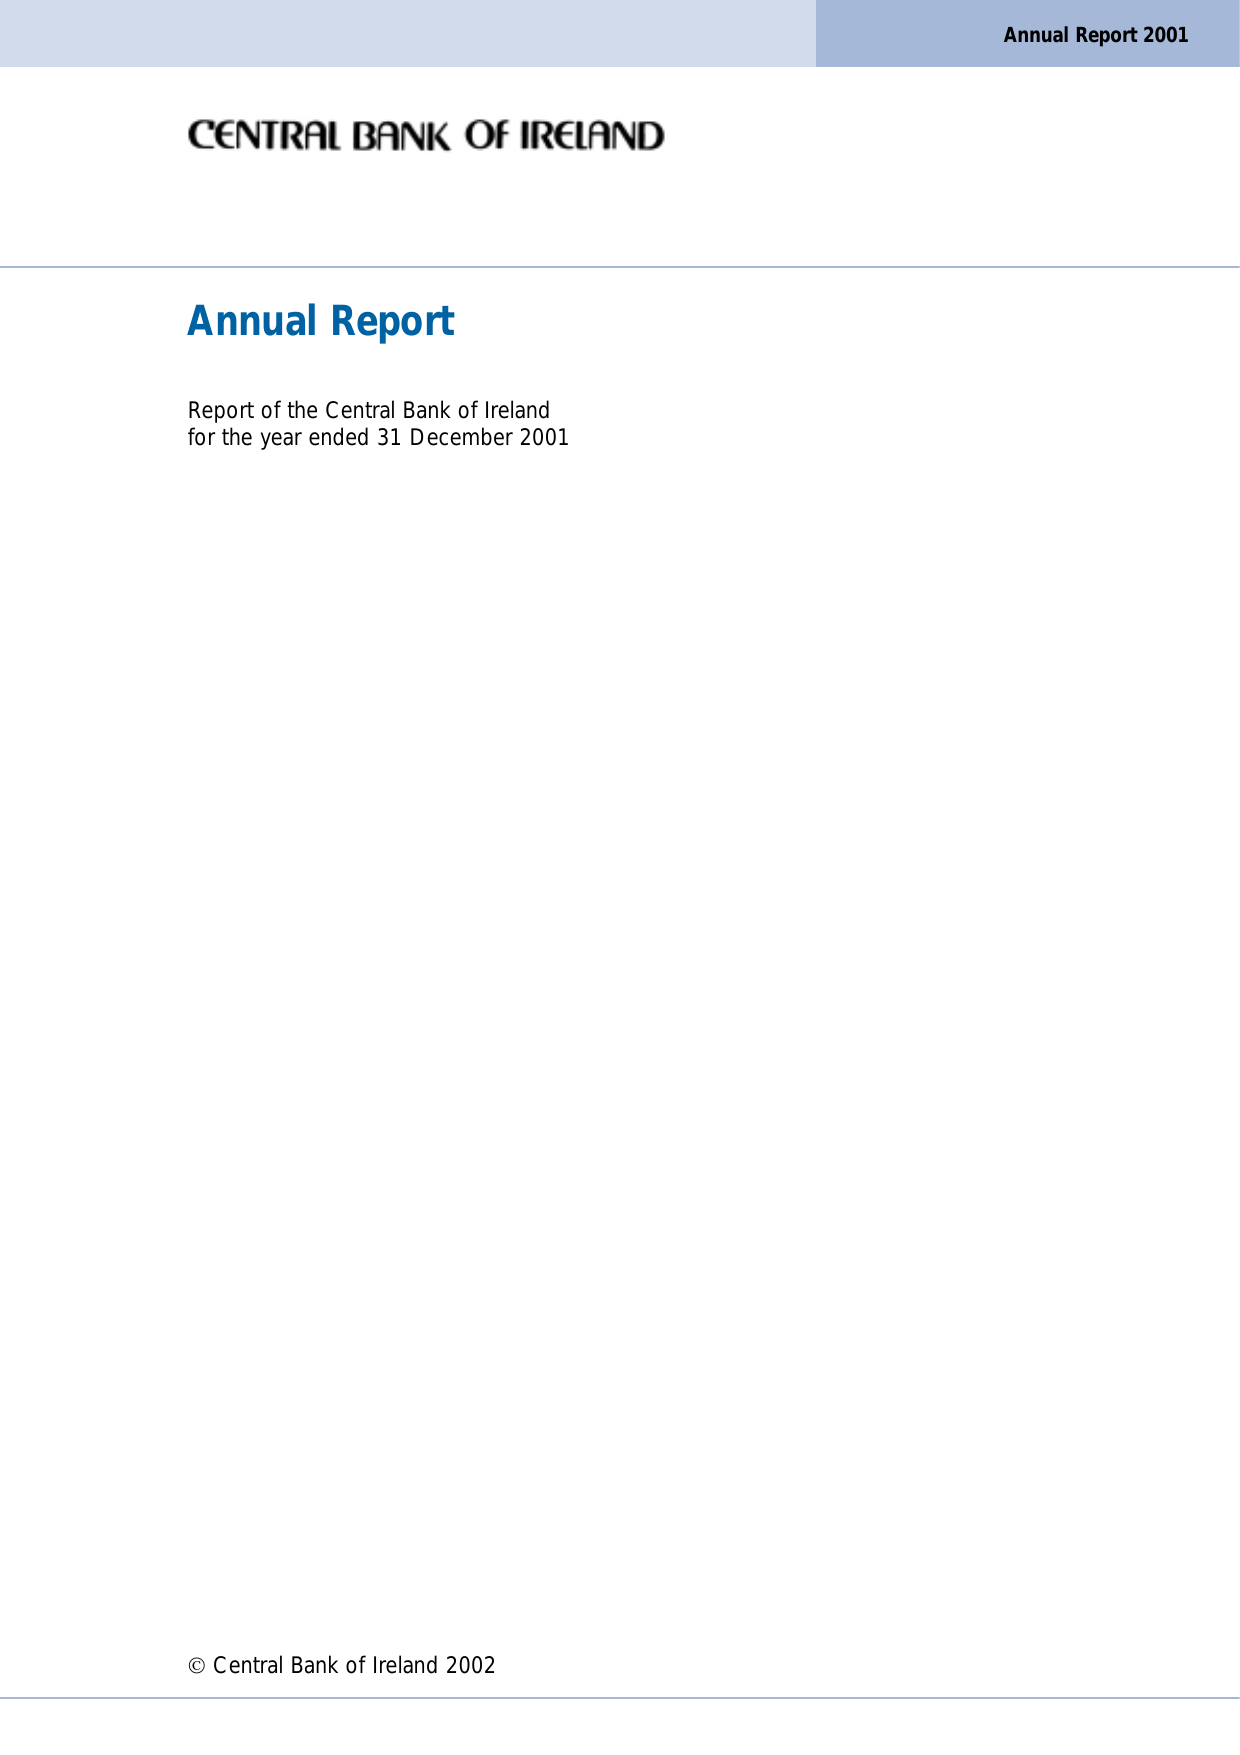 Annual Report - Central Bank of Ireland